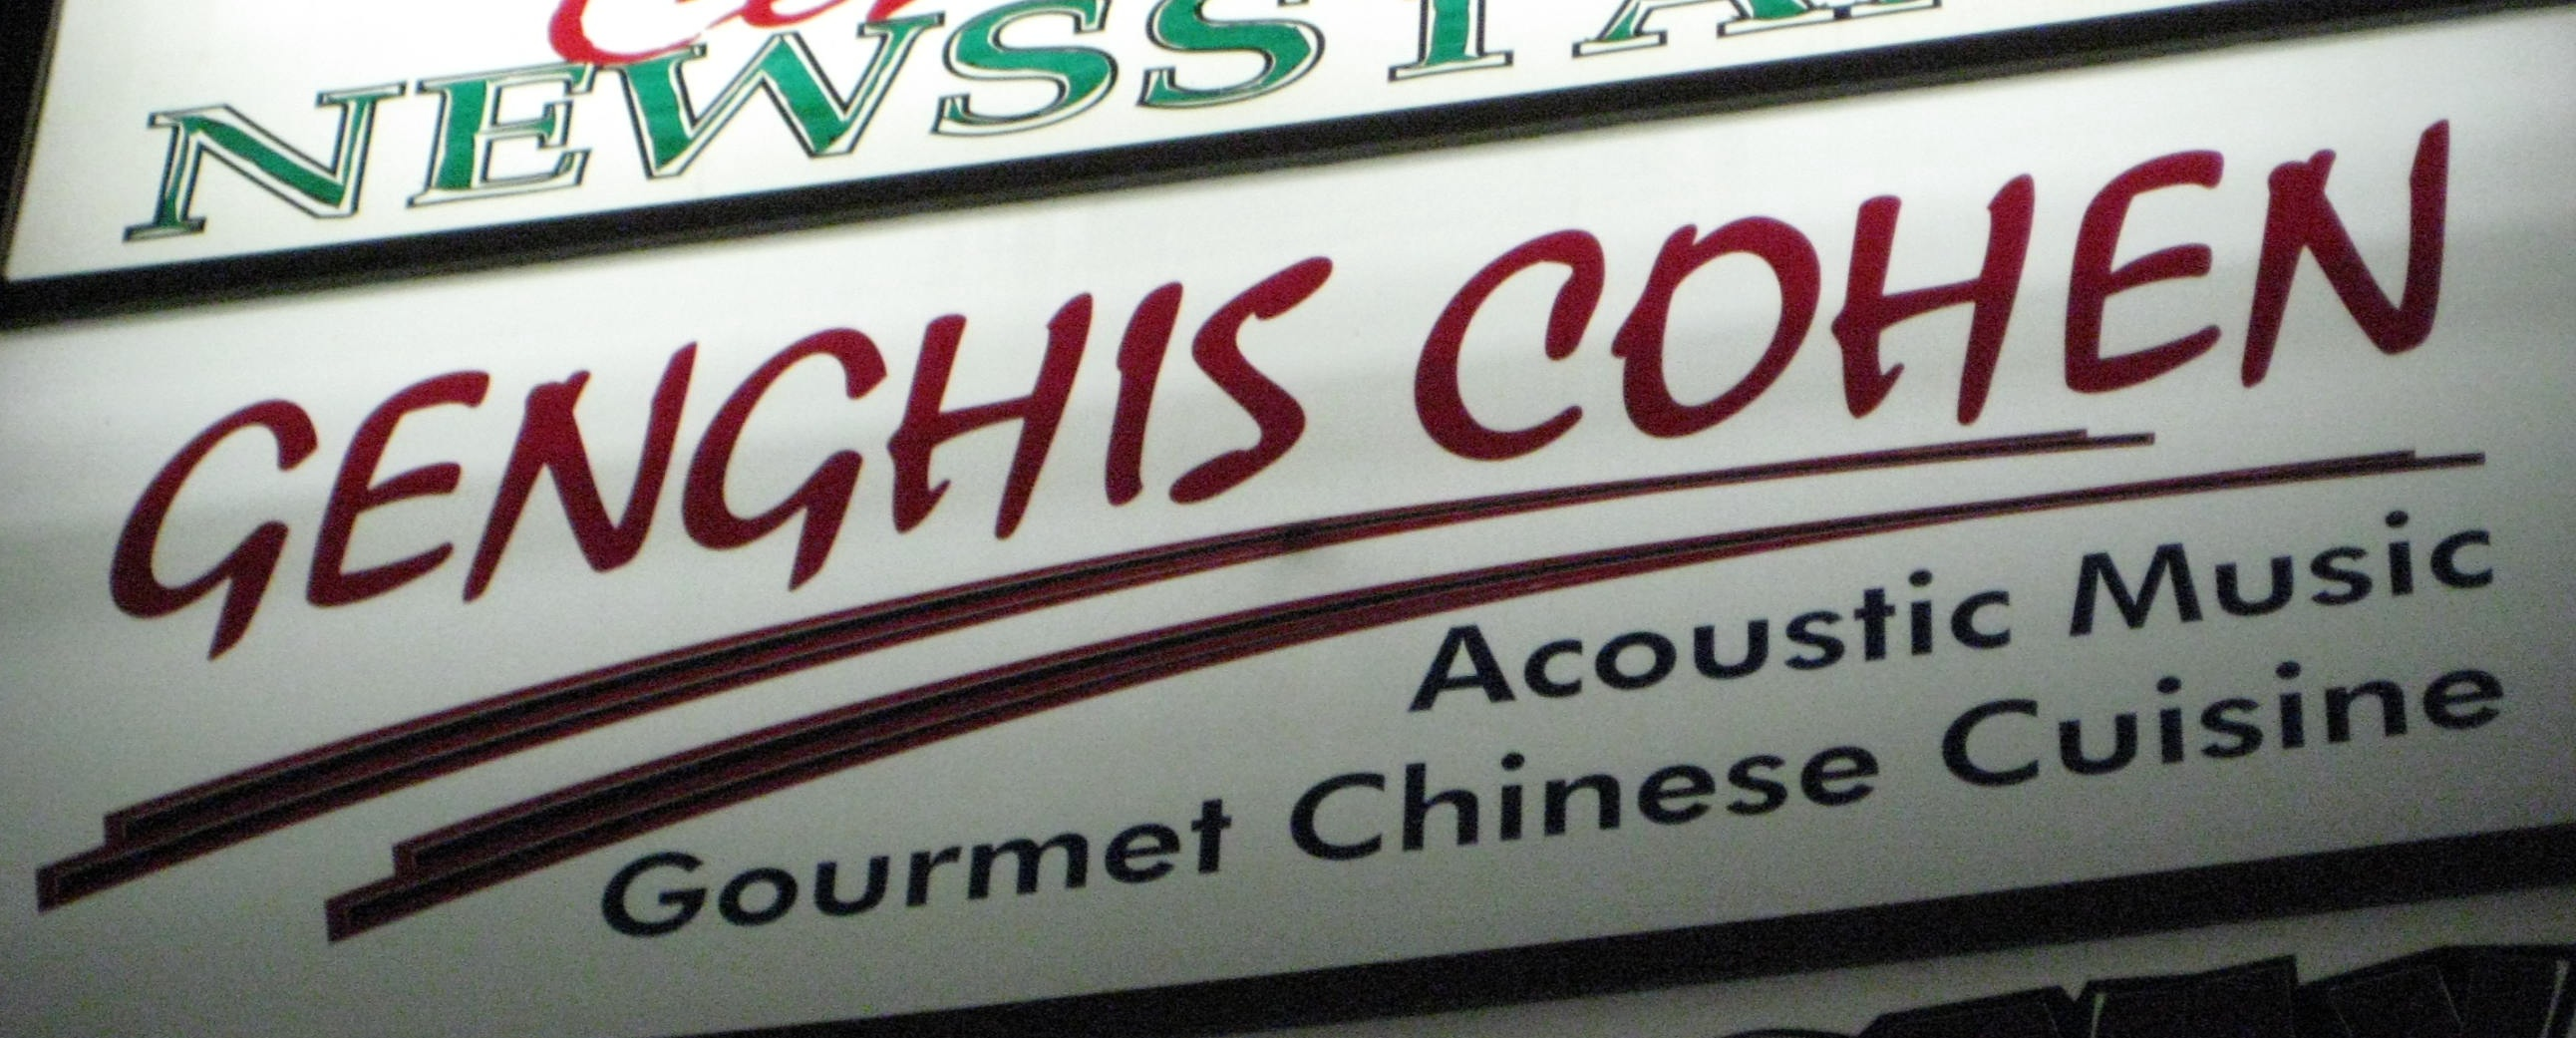 Genghis Cohen in Los Angeles